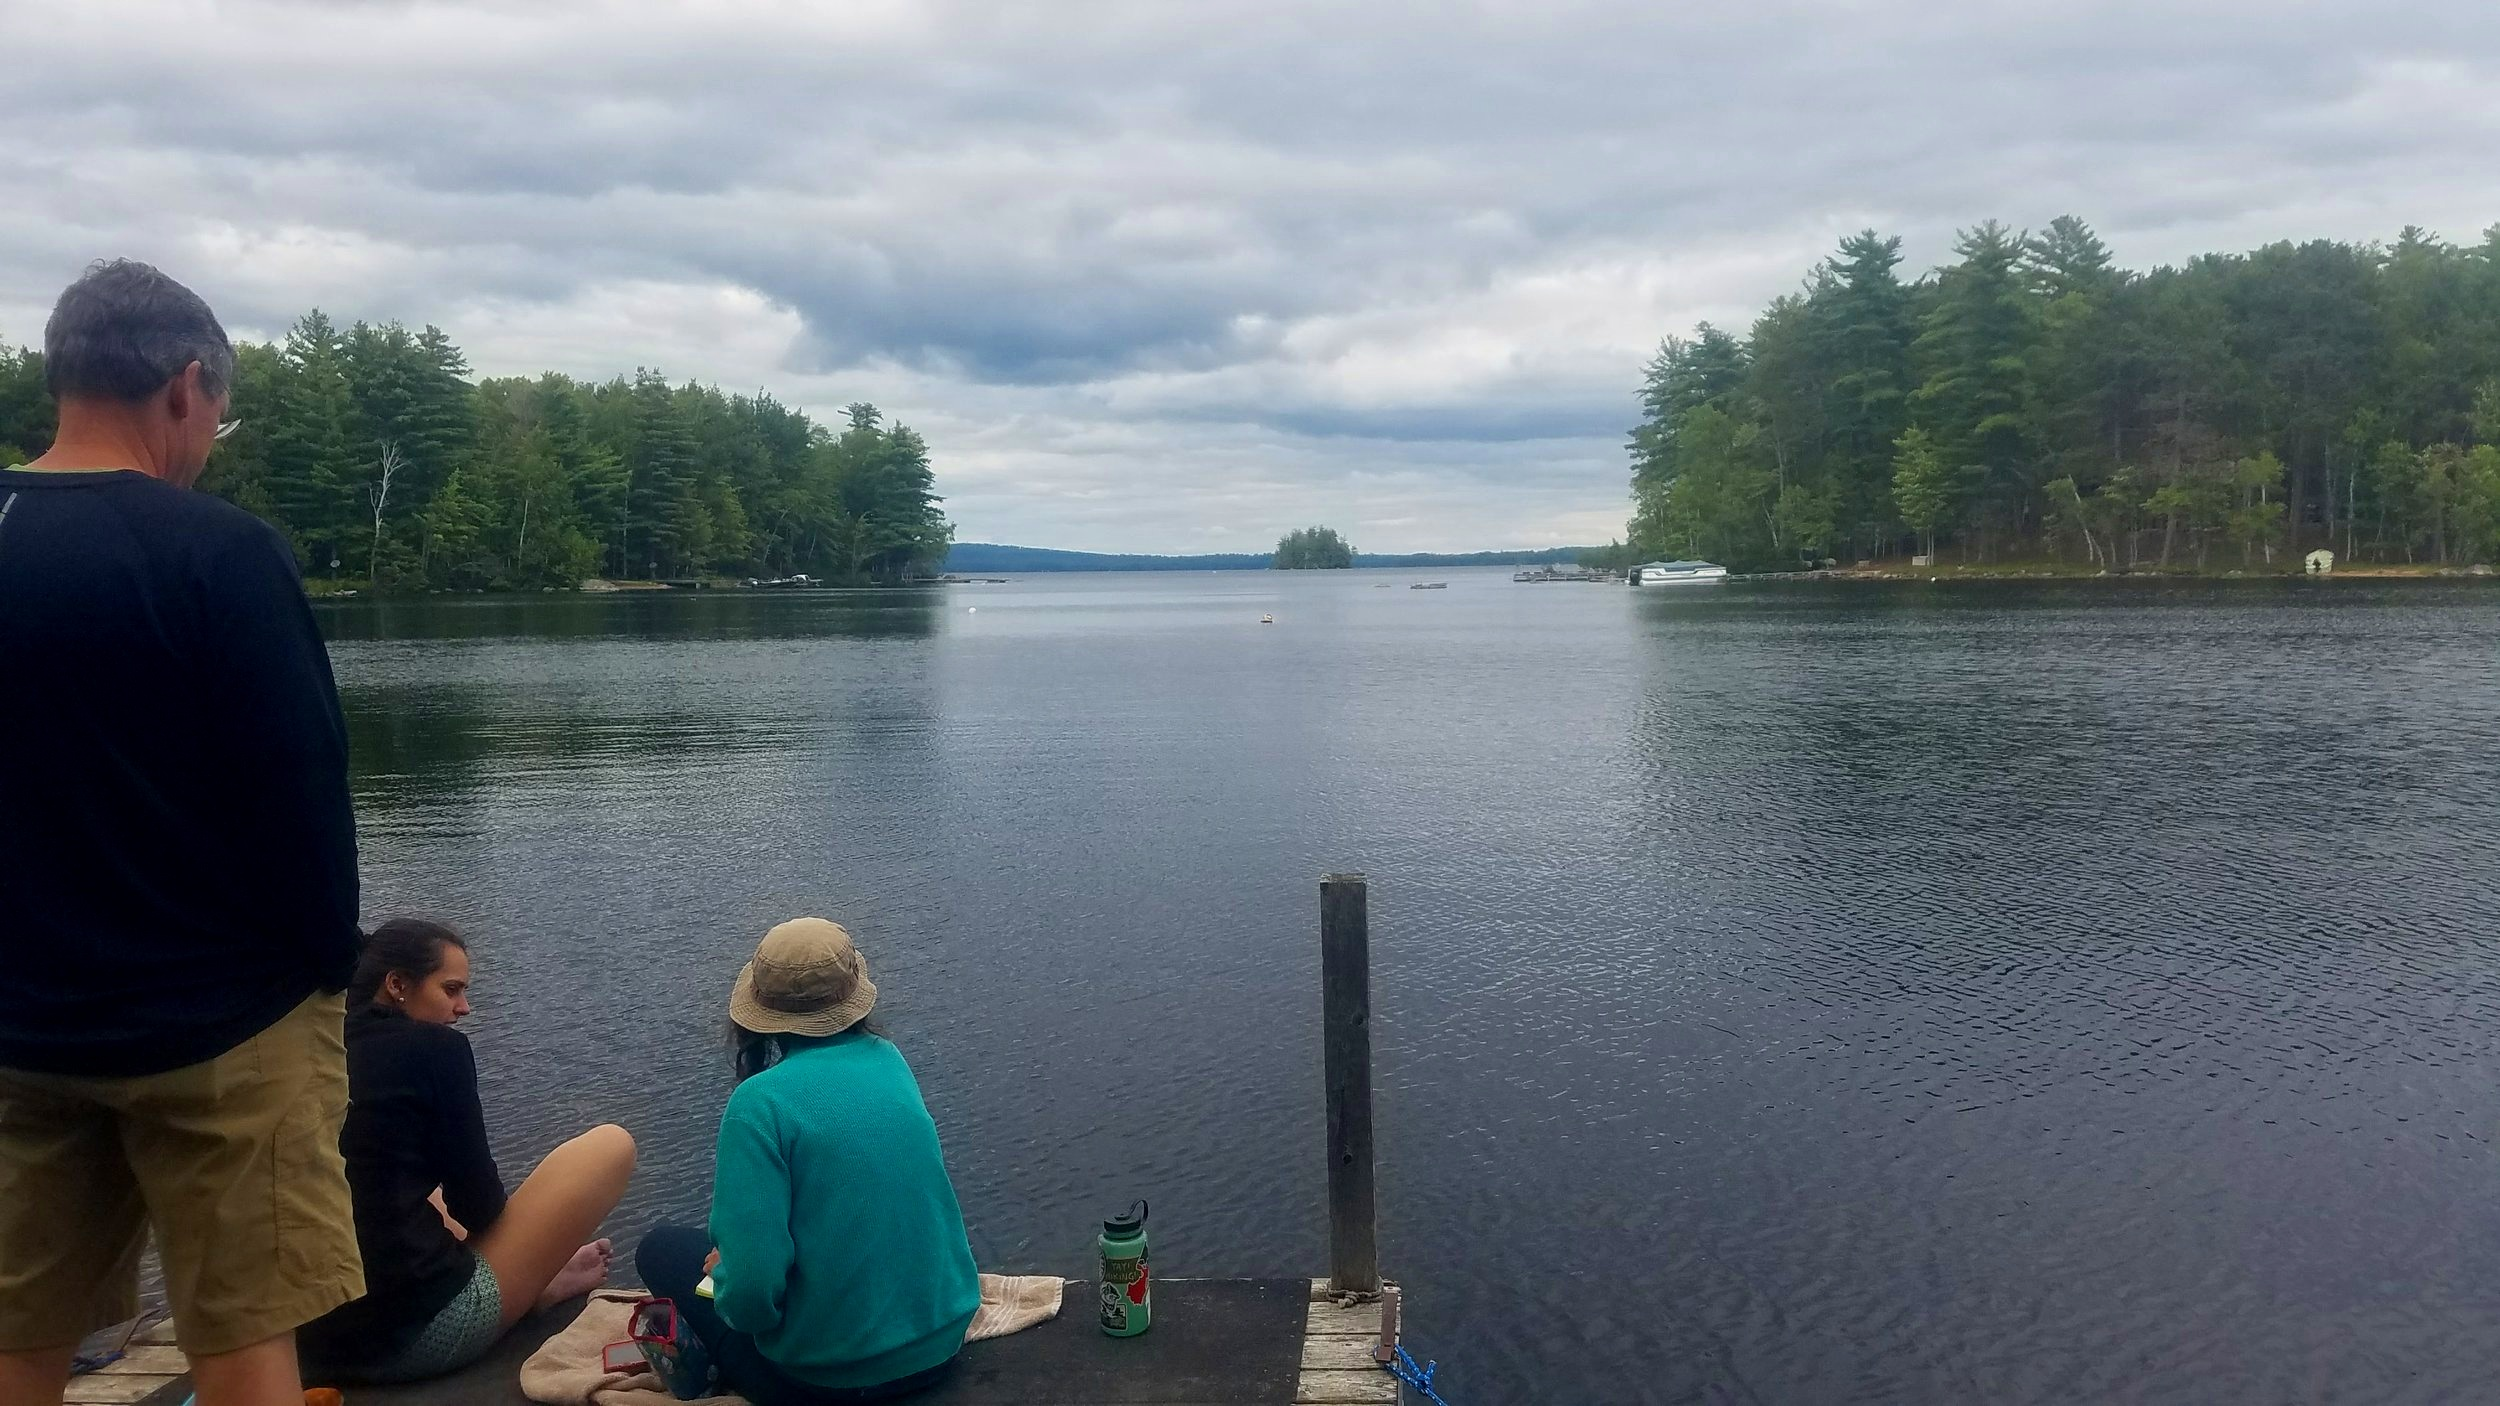 Looking out over Moose Lake